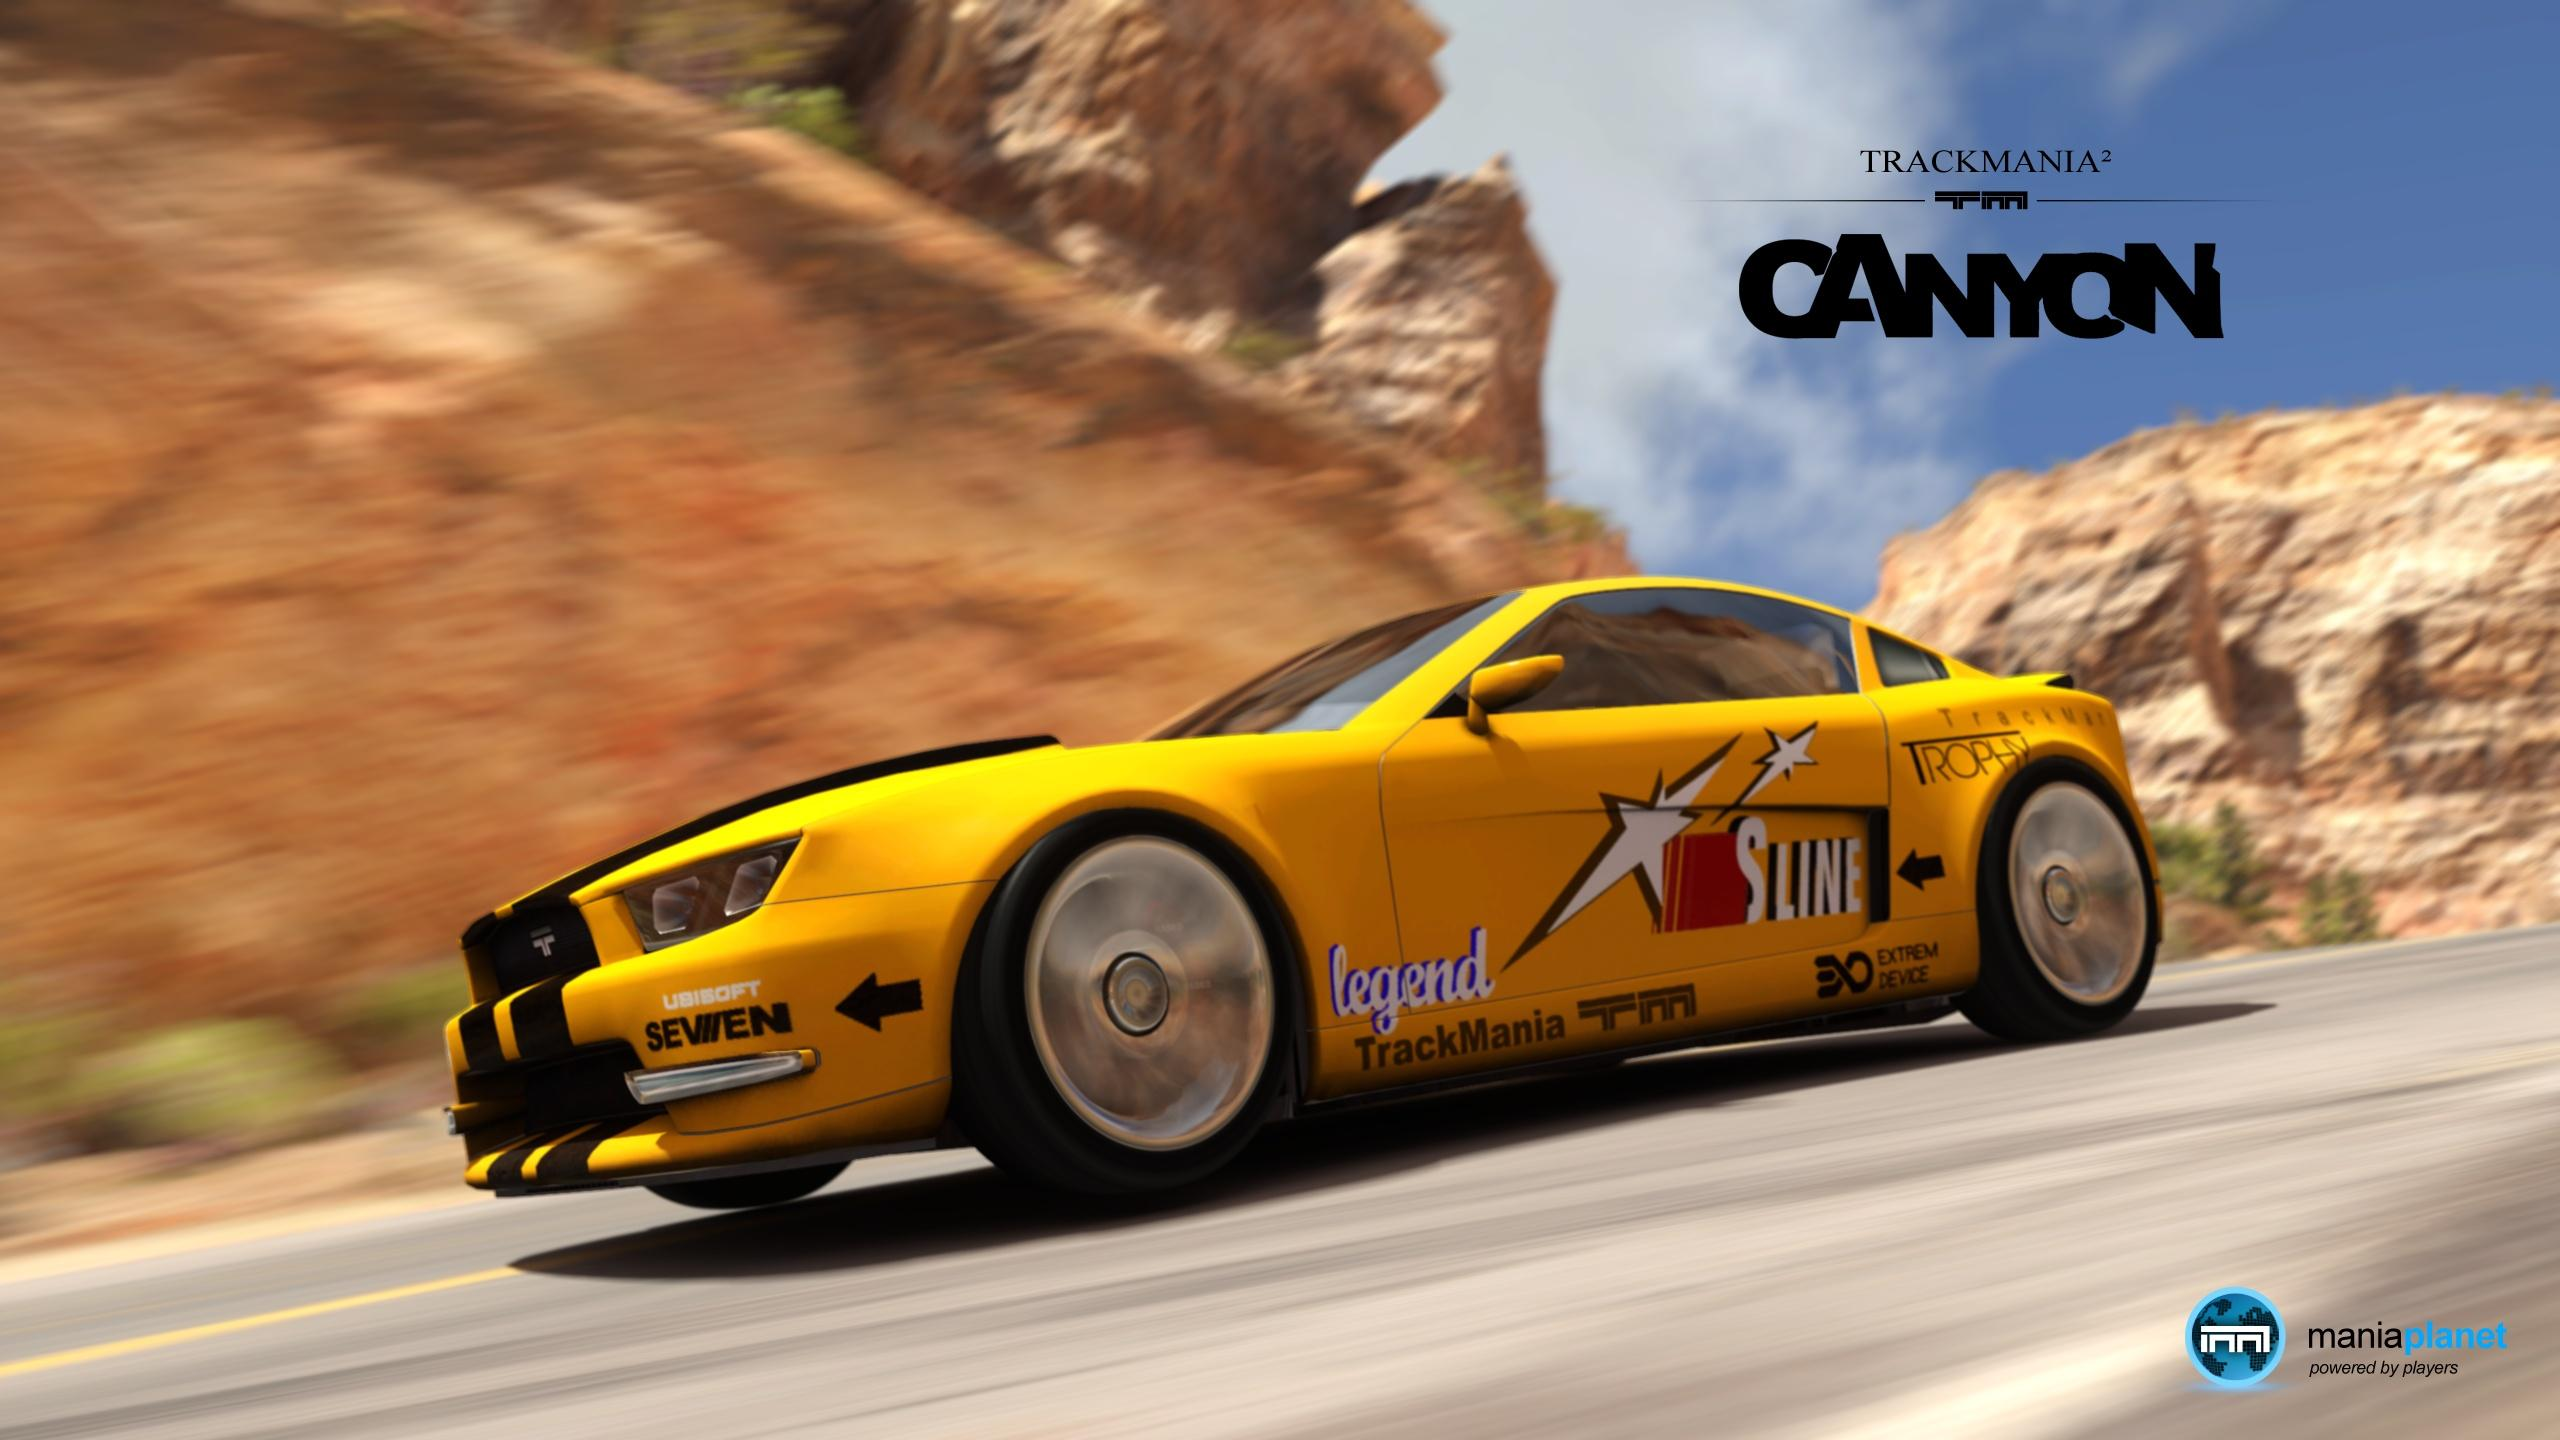 TrackMania 2 Canyon Logo